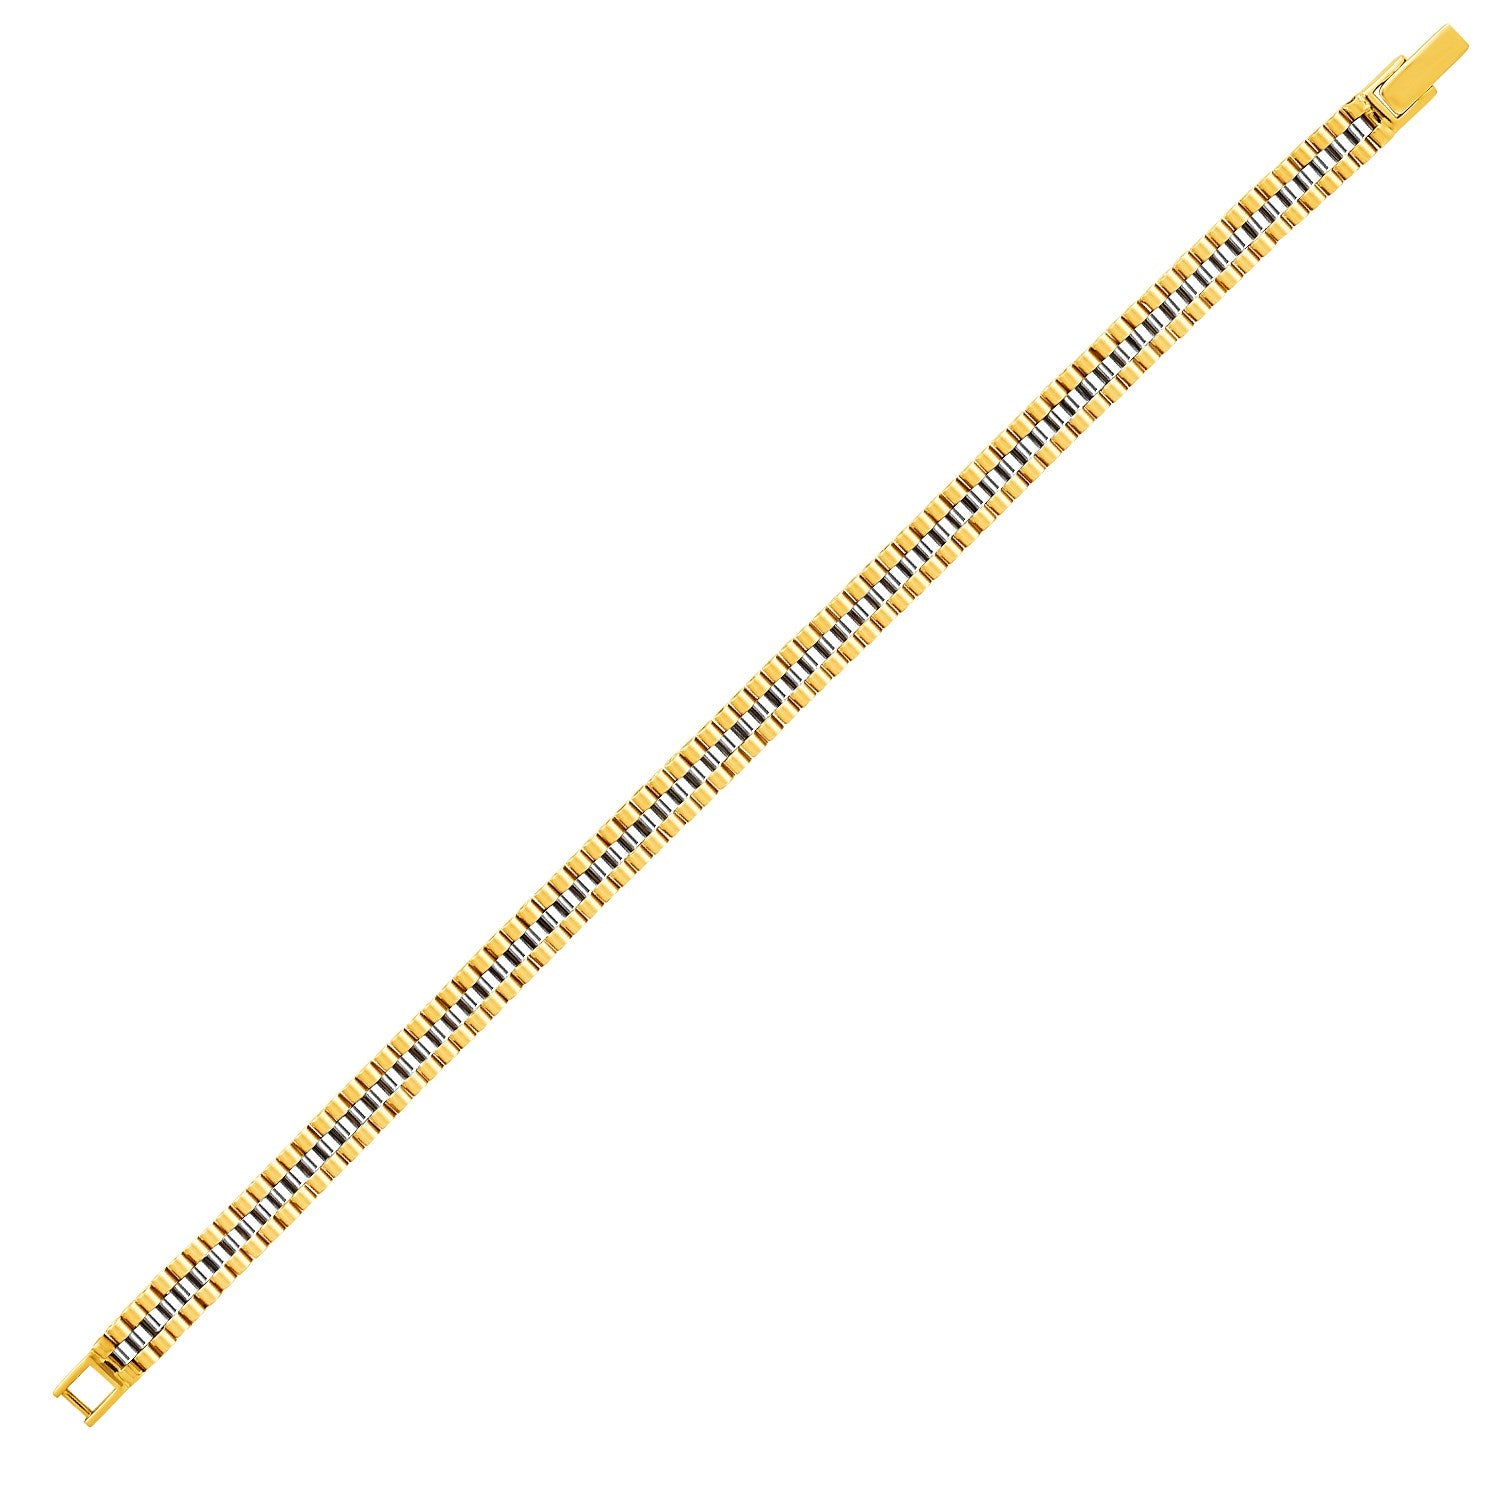 14K Two-Toned Yellow and White Gold Panther Link Bracelet